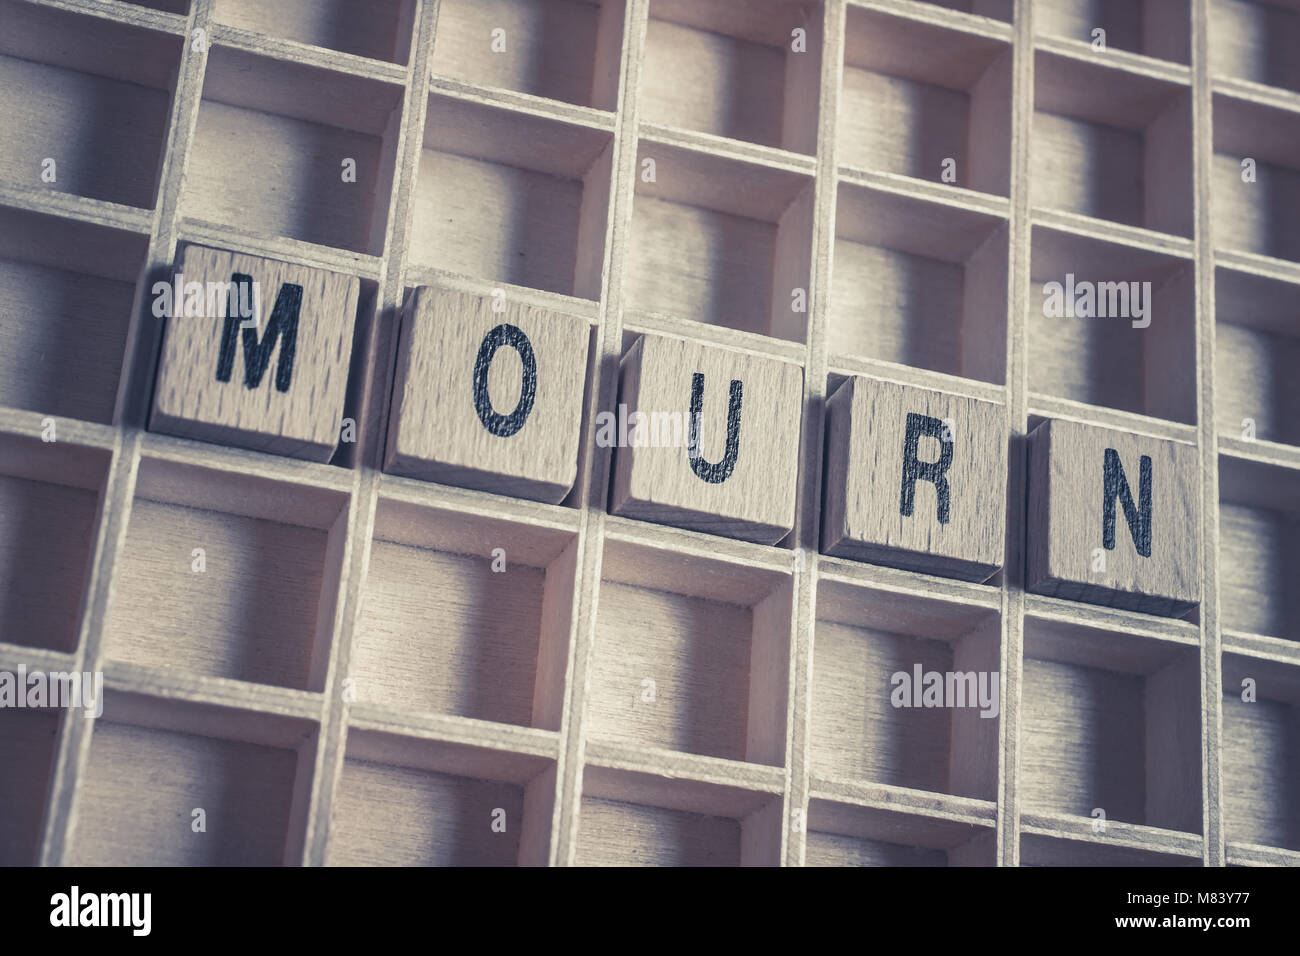 Closeup Of The Word Mourn Formed By Wooden Blocks On A Wooden Floor - Stock Image